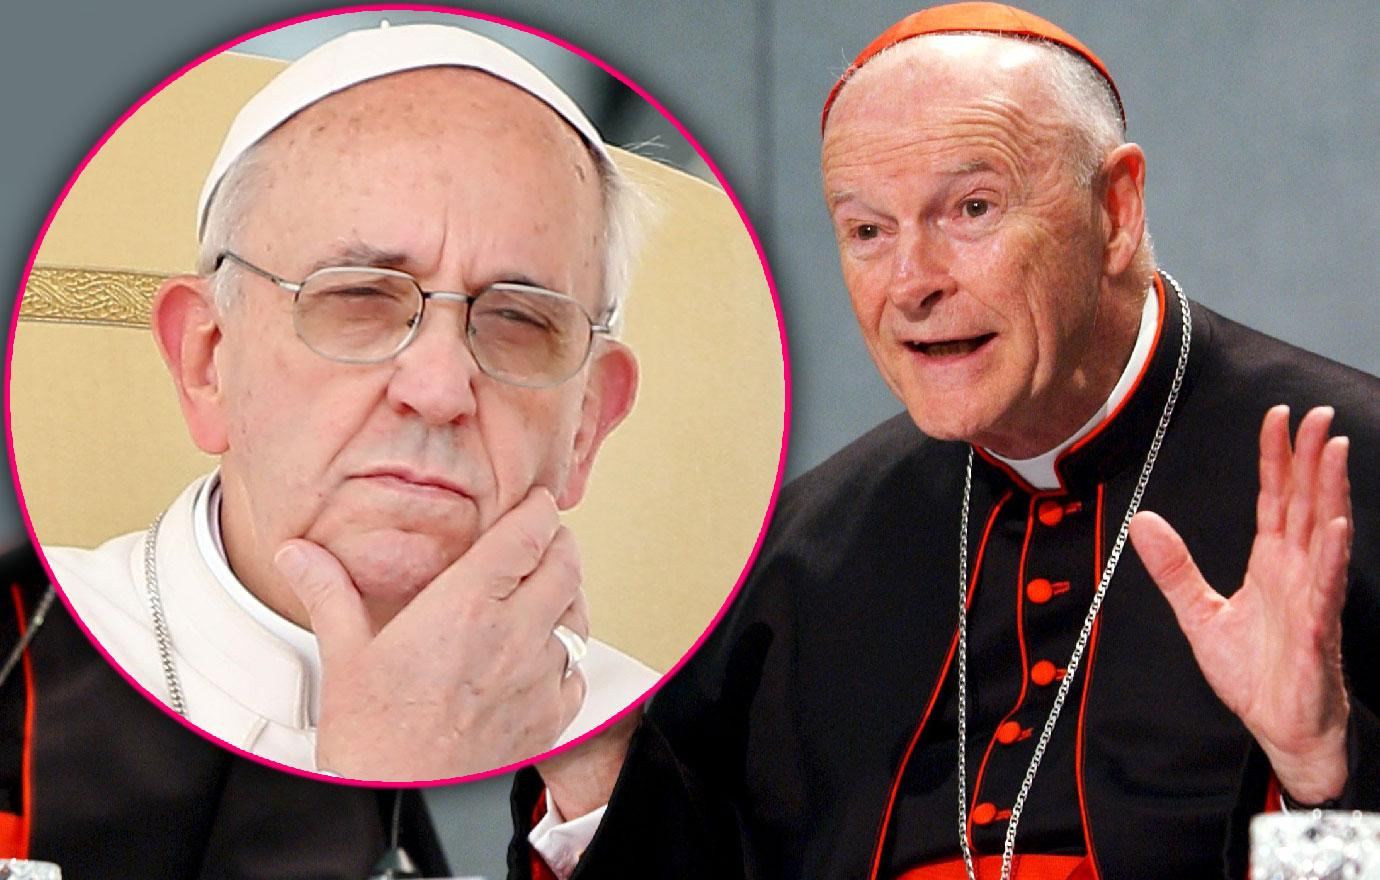 Pope Defrocks Cardinal McCarrick Amid Child Abuse Allegations